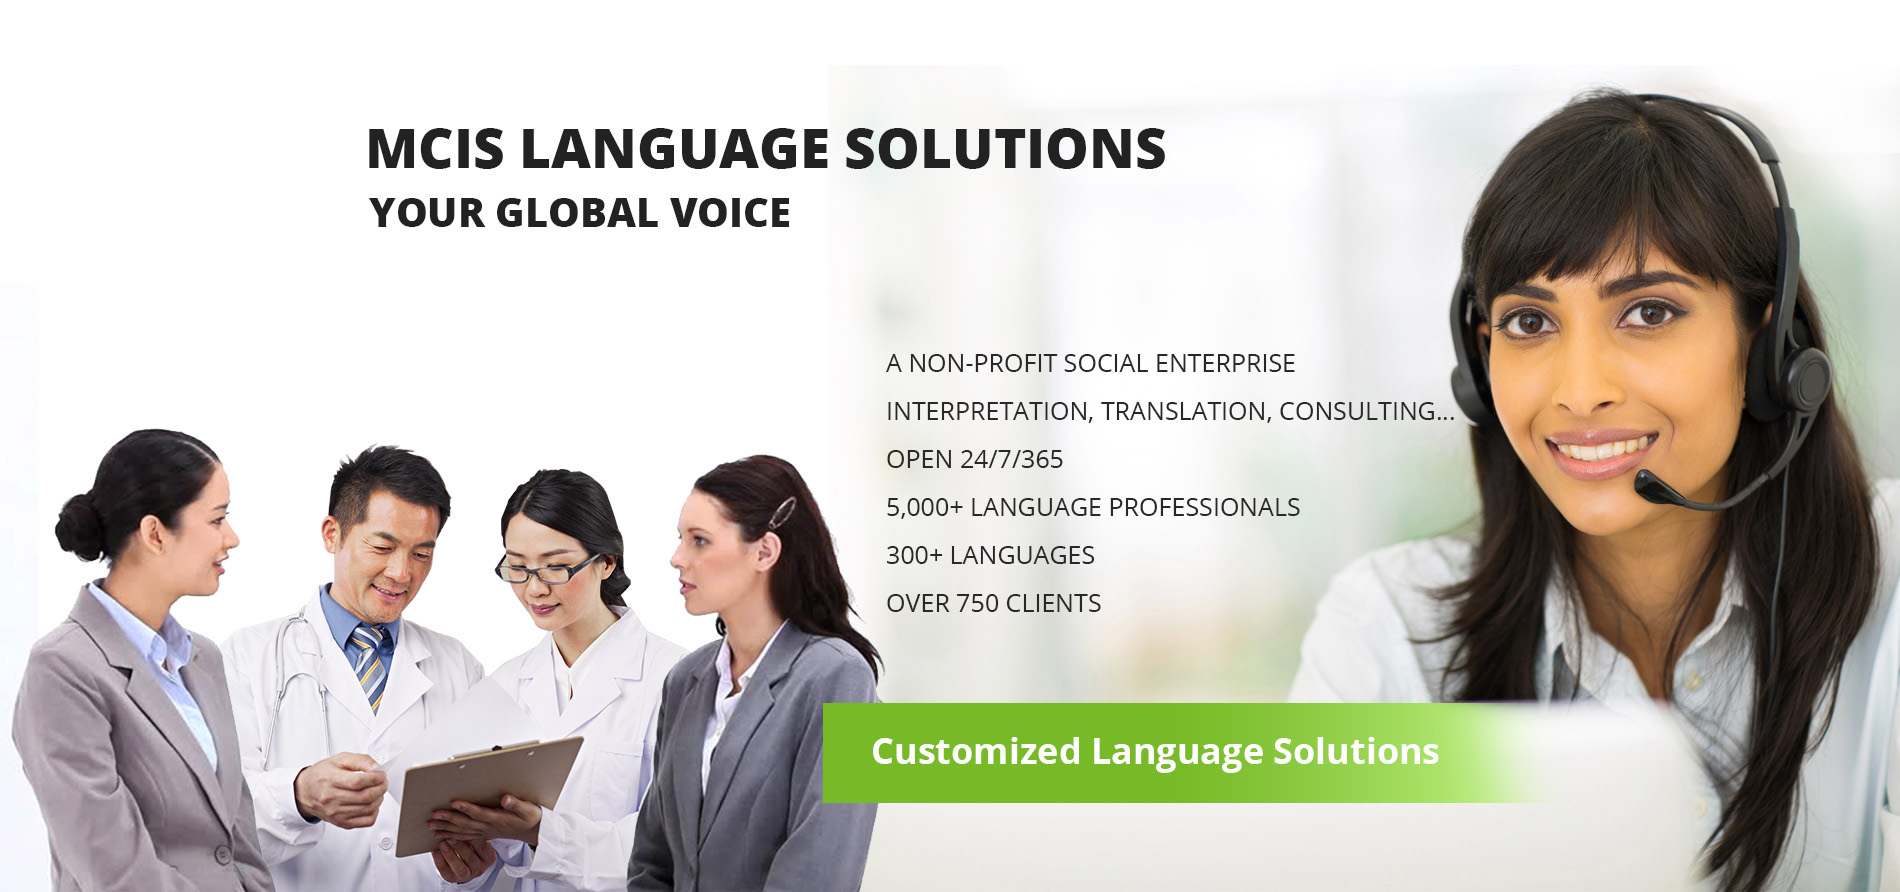 MCIS Language Solutions. Your Global Voice.